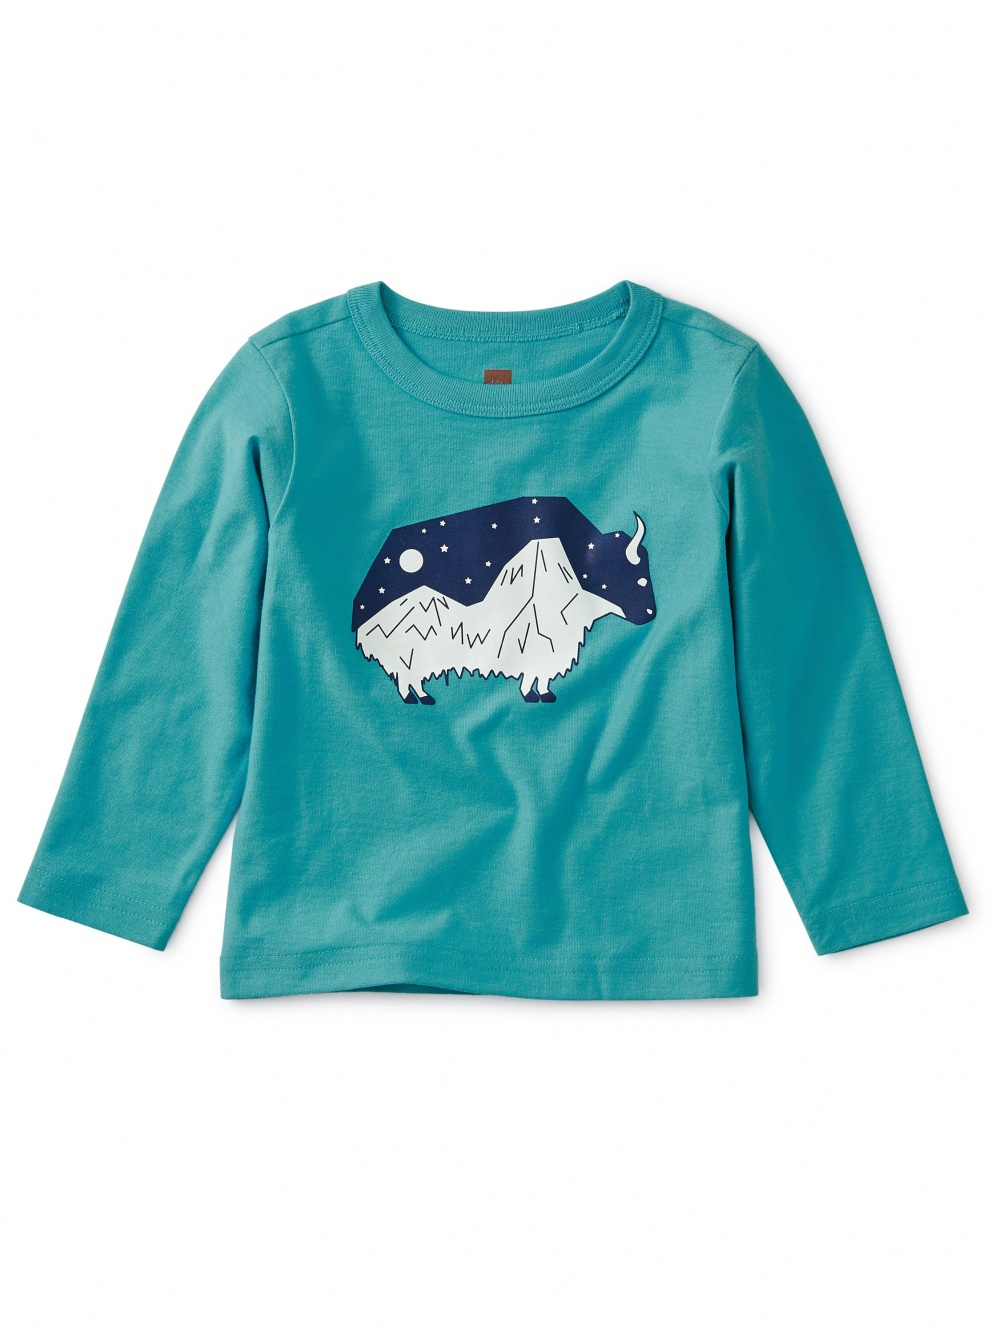 Glow In The Dark Baby Yak Tee